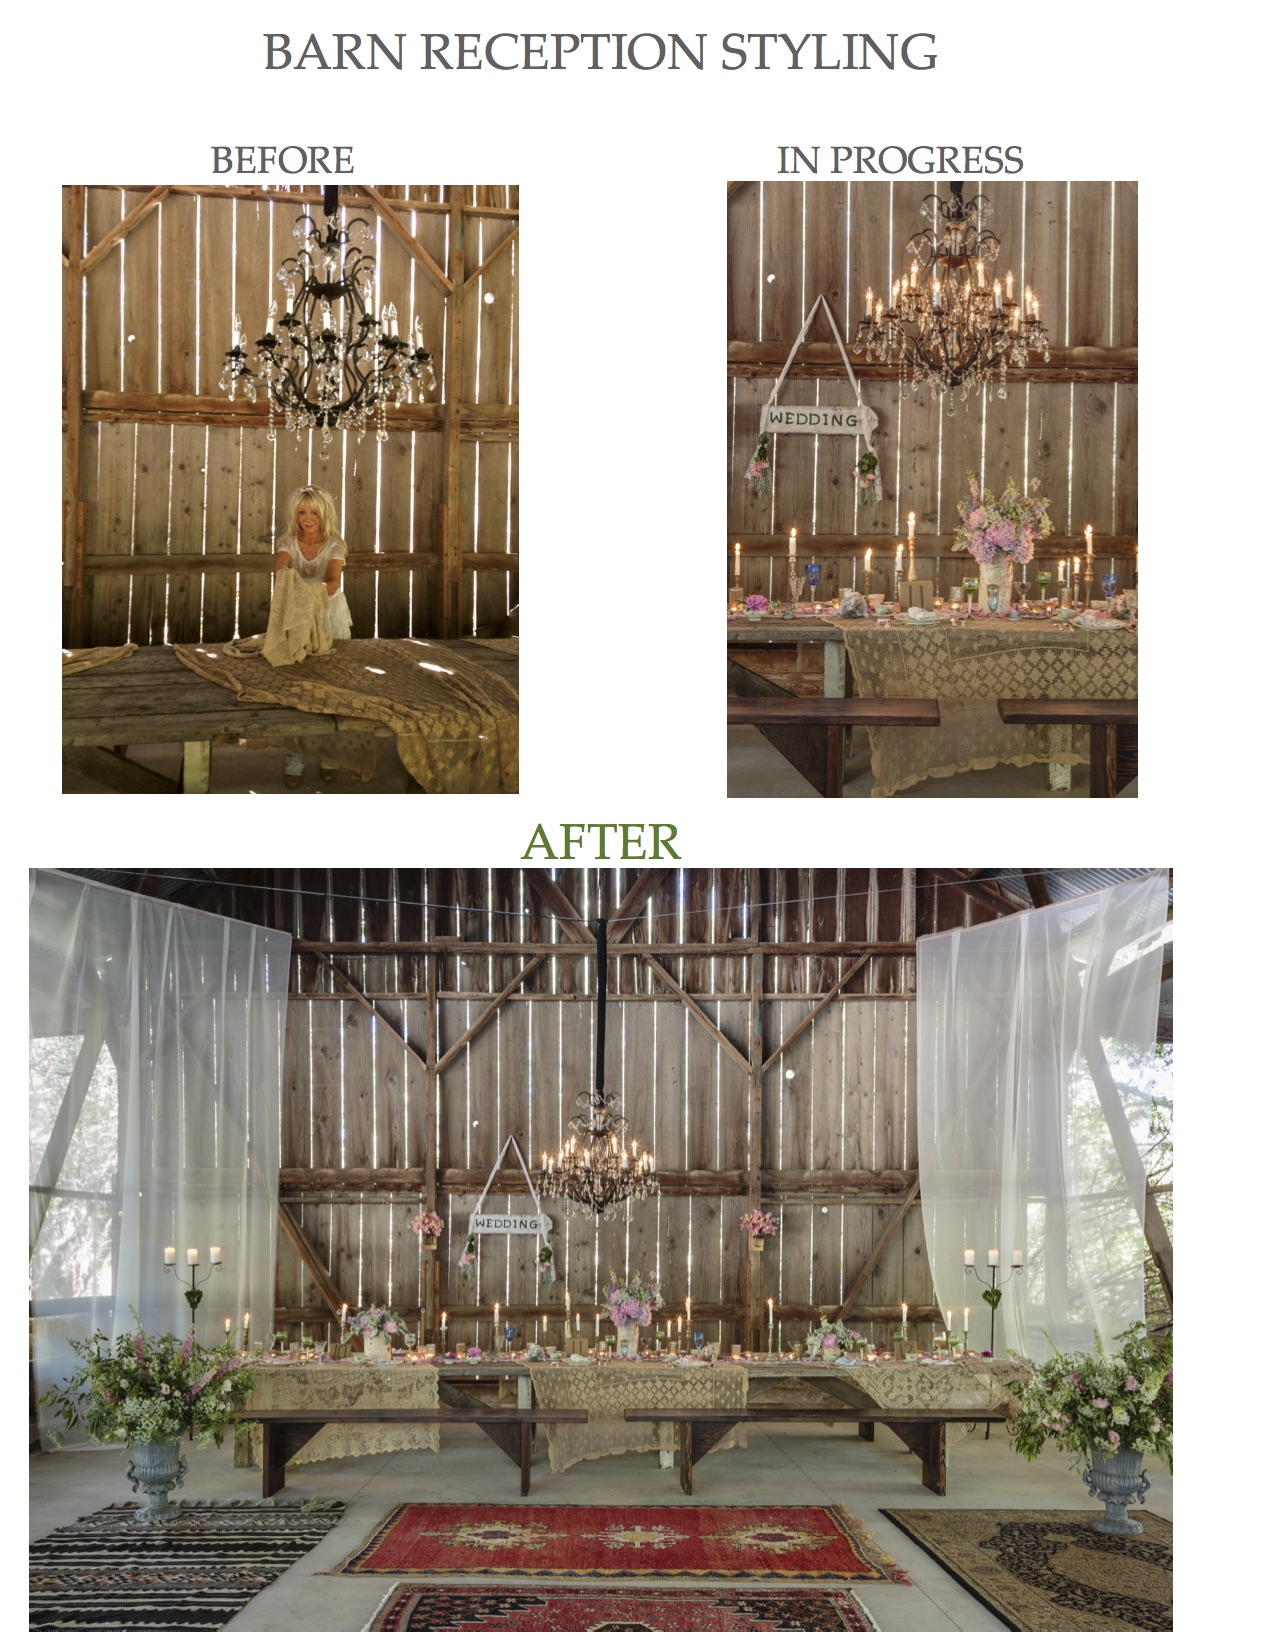 BARN BEFORE AND AFTER PDF copy.jpg